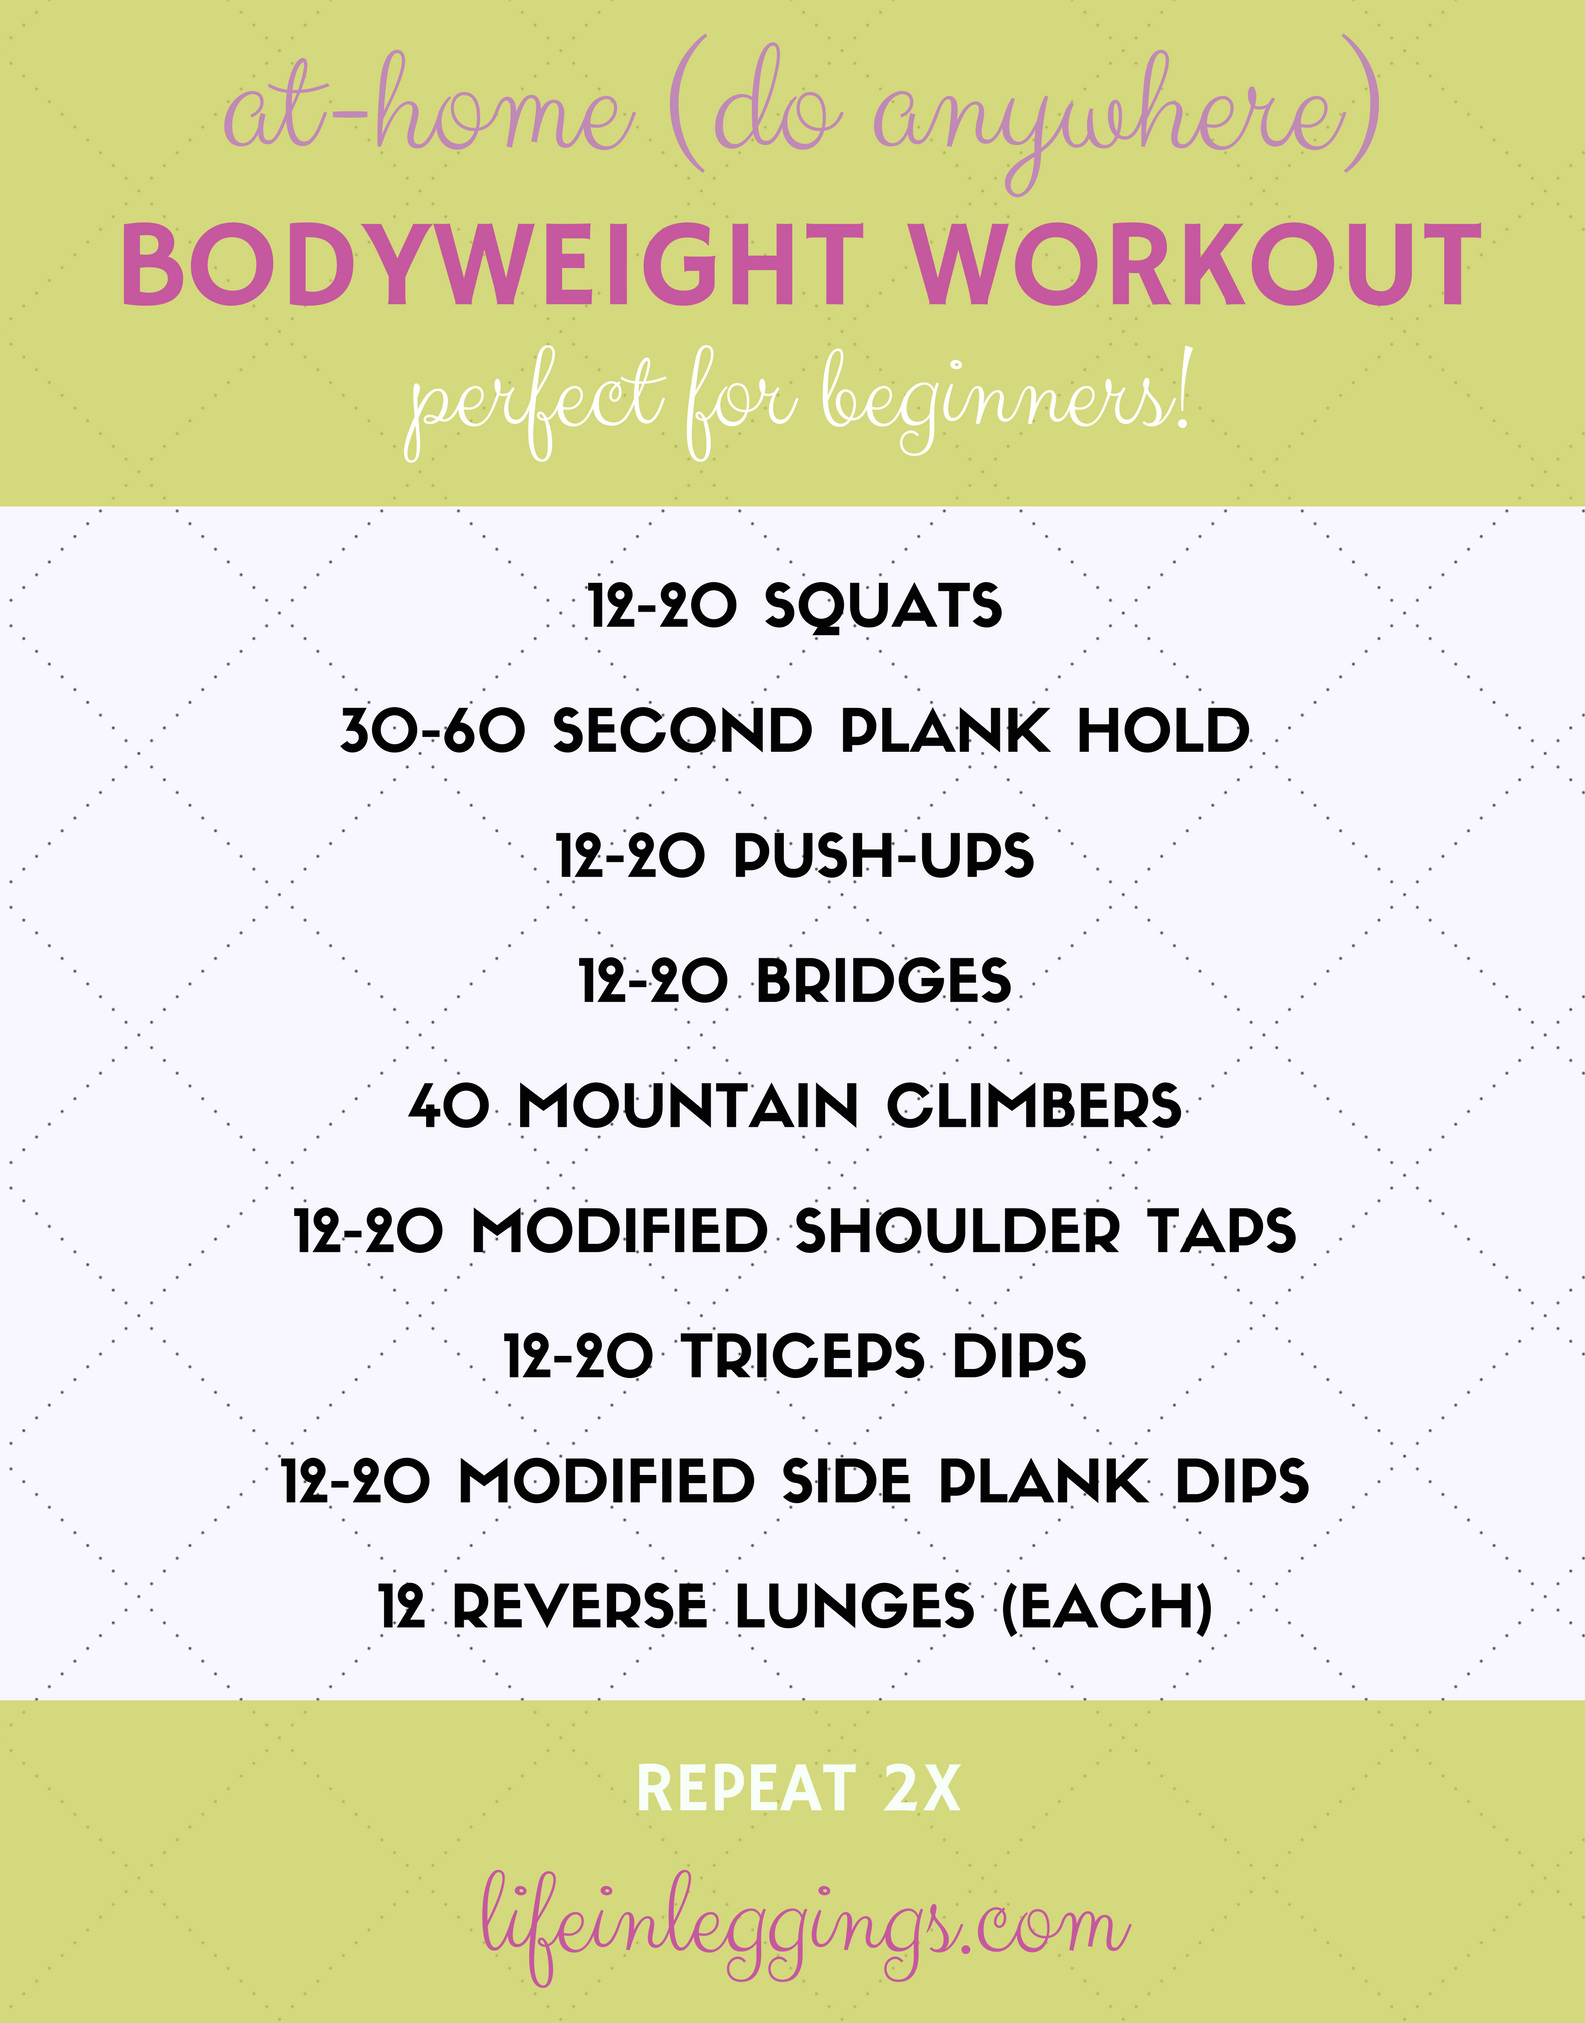 at-home (do anywhere) bodyweight workout - life in leggings